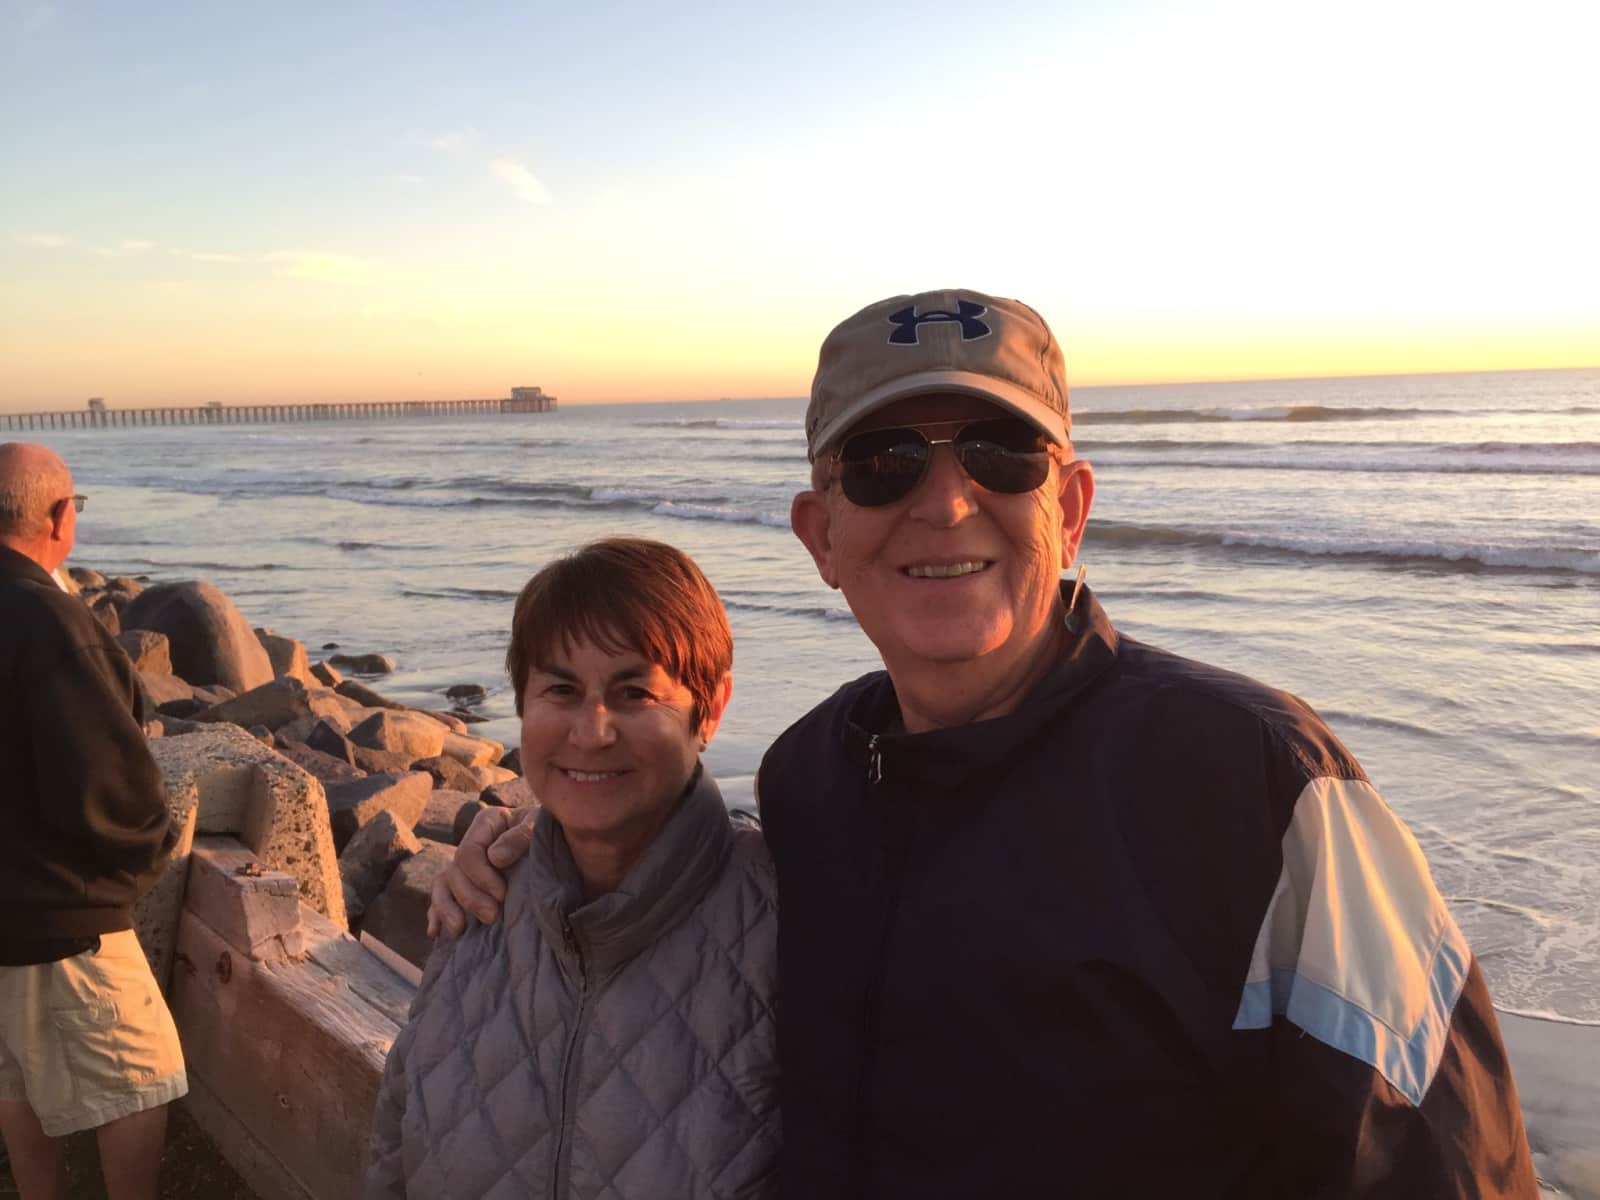 Roger & Loretta from Annapolis, Maryland, United States